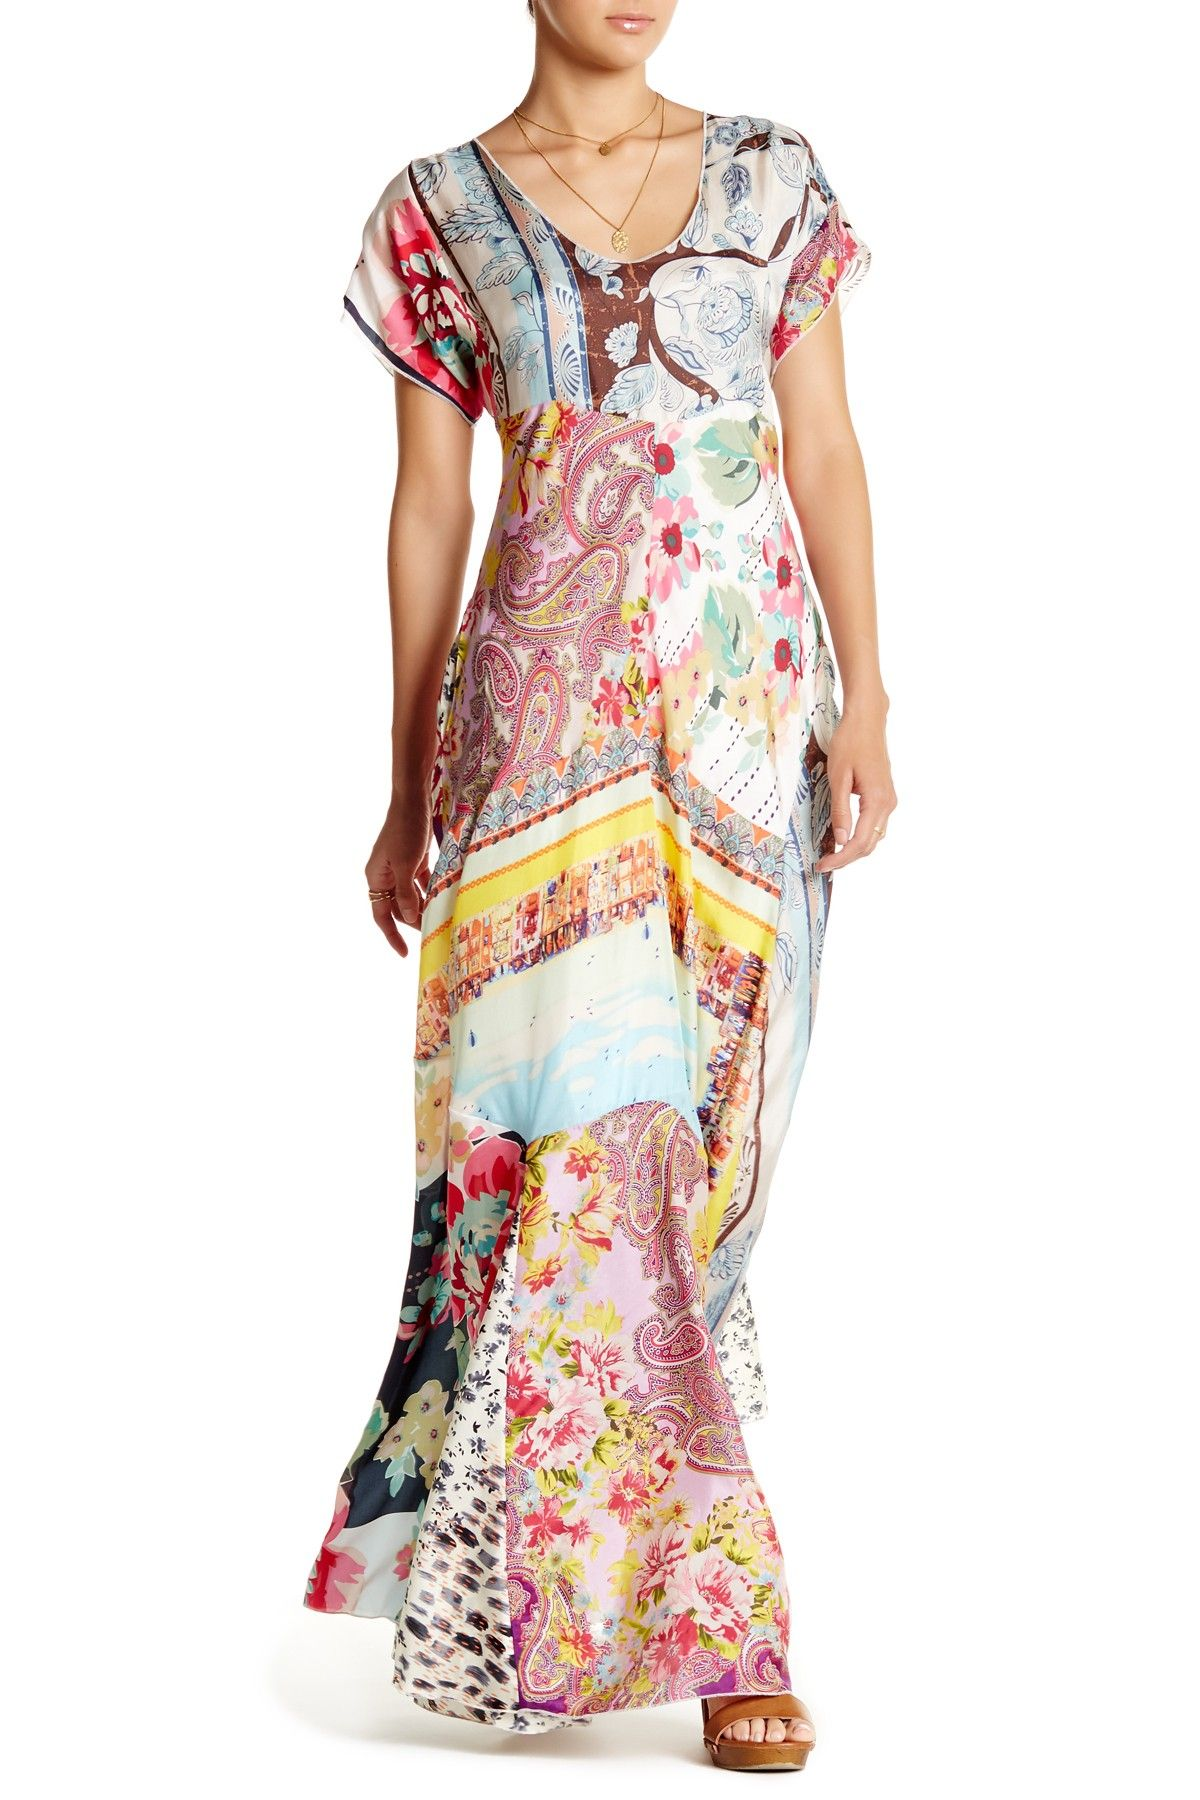 Printed Silk Maxi Dress By Johnny Was On Hautelook The Look